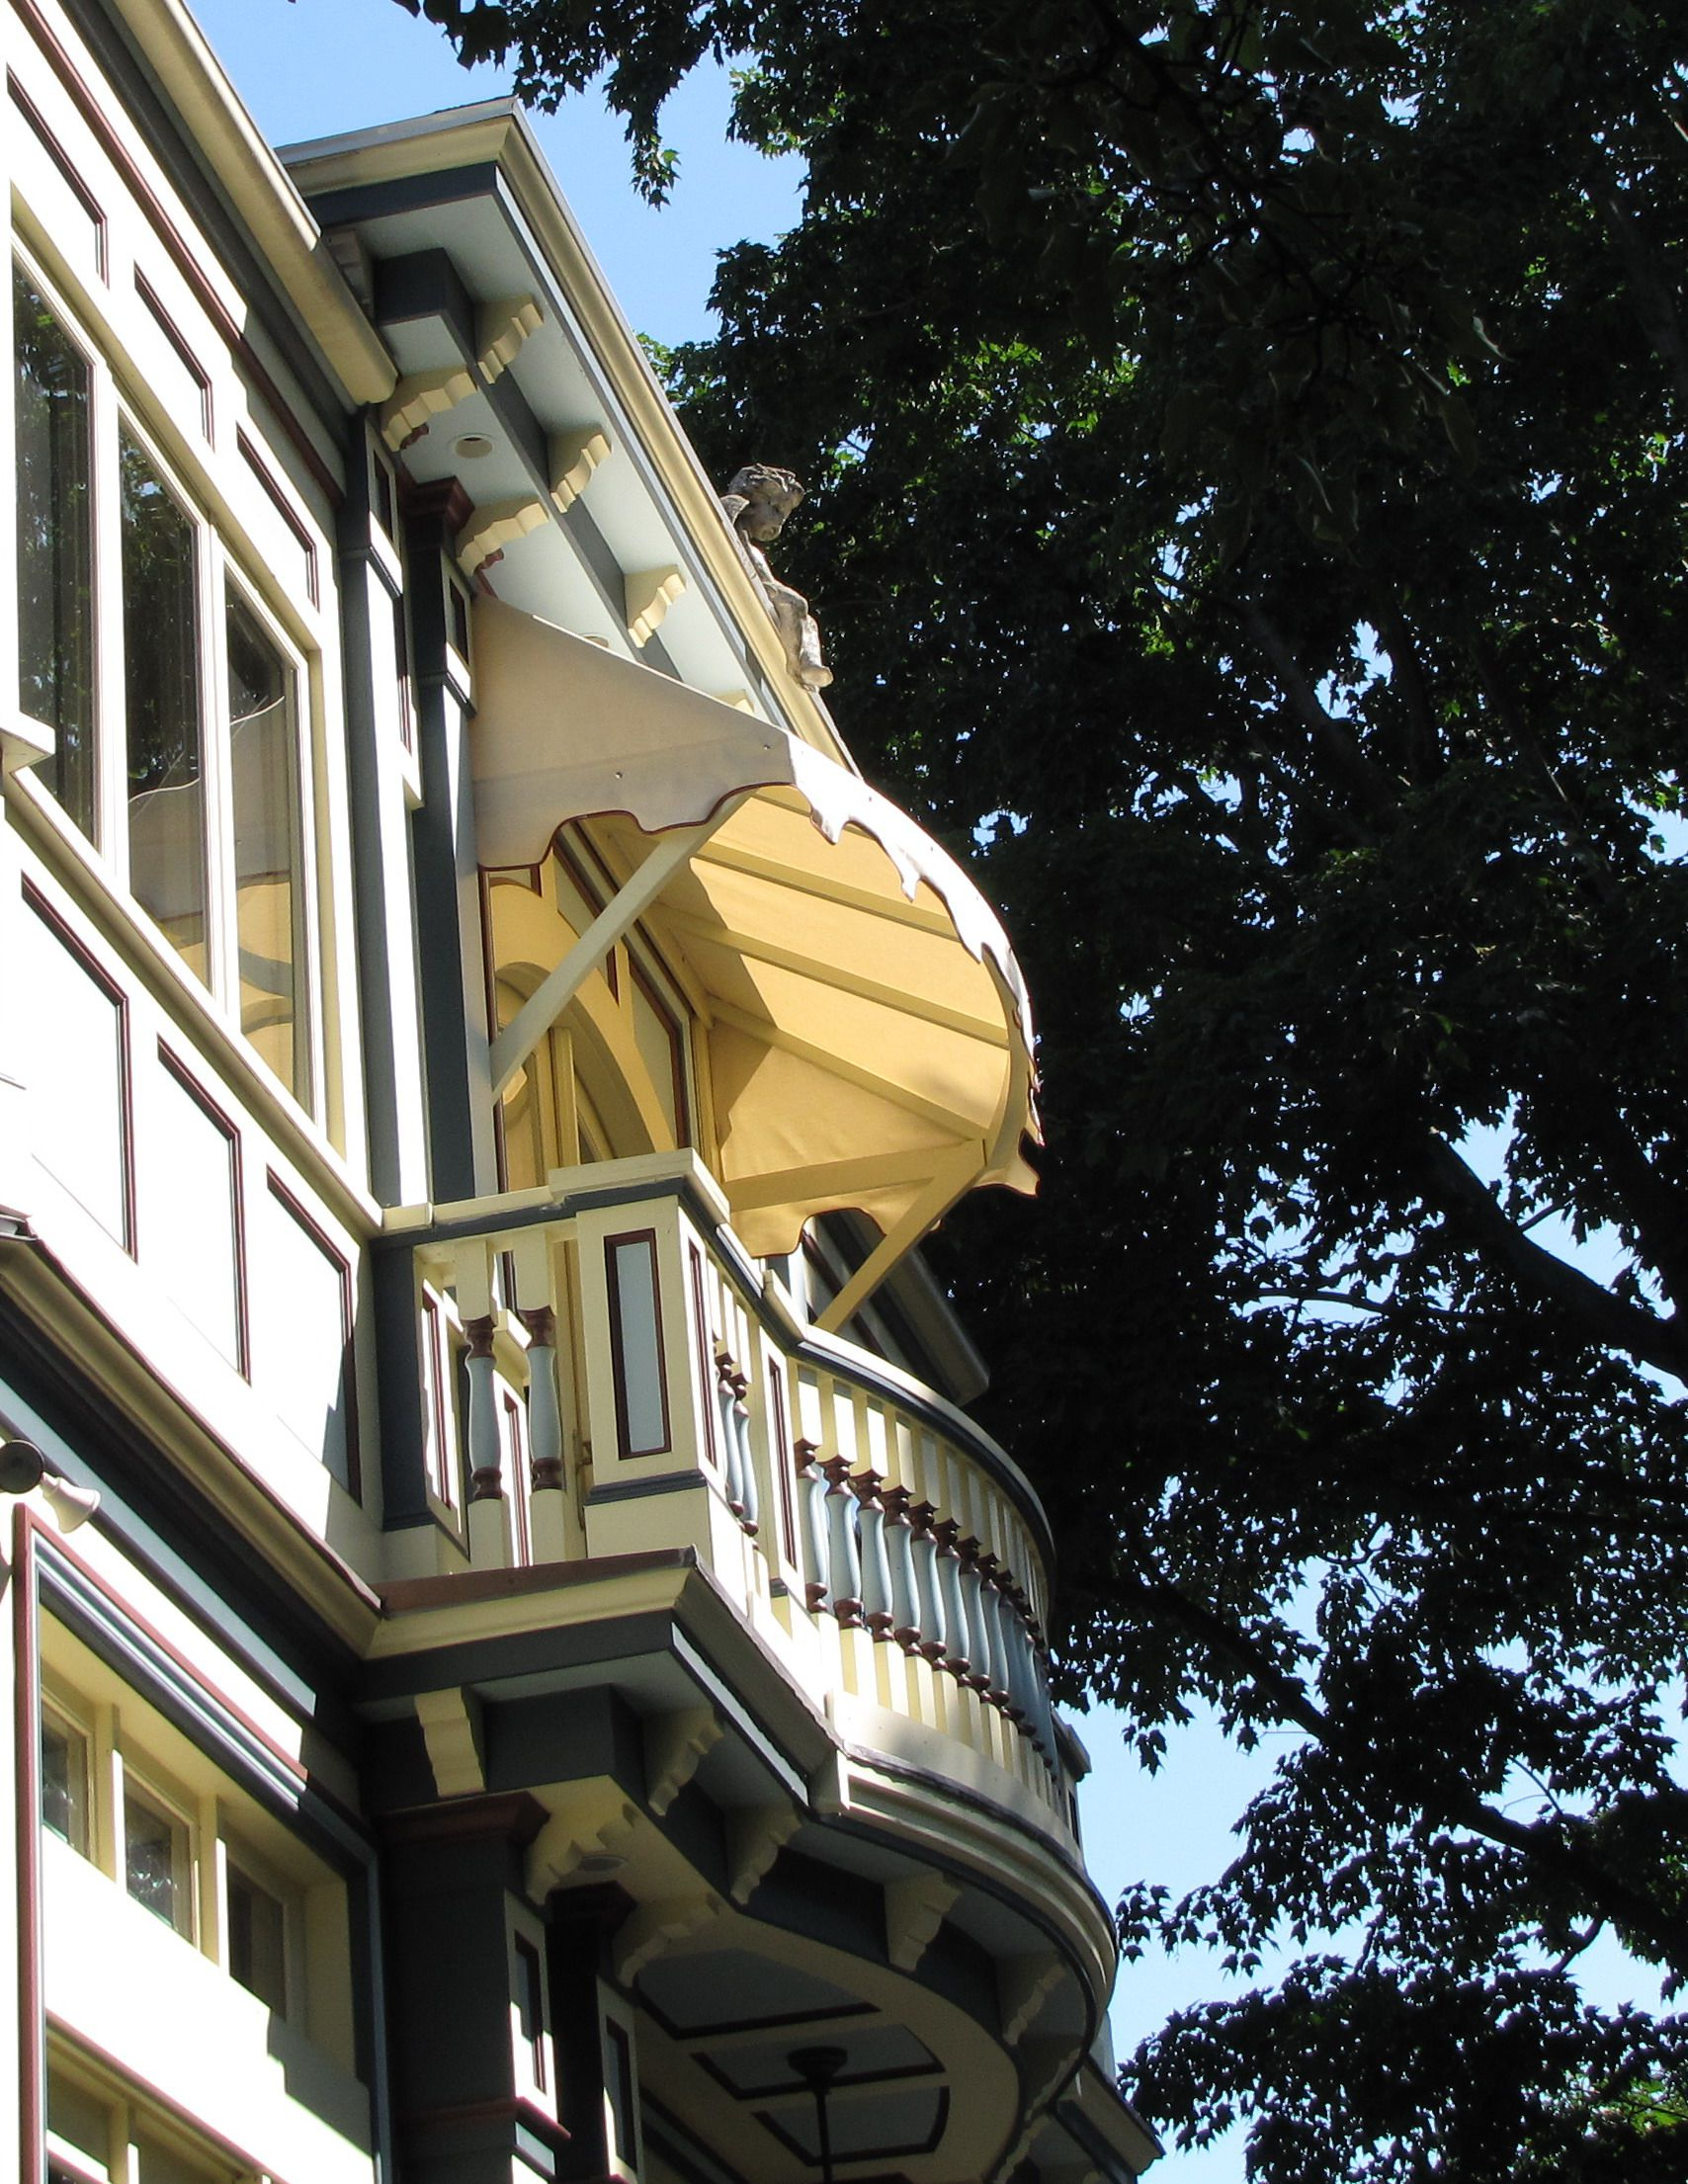 This wood framed window awning matches the architecture of the house well.